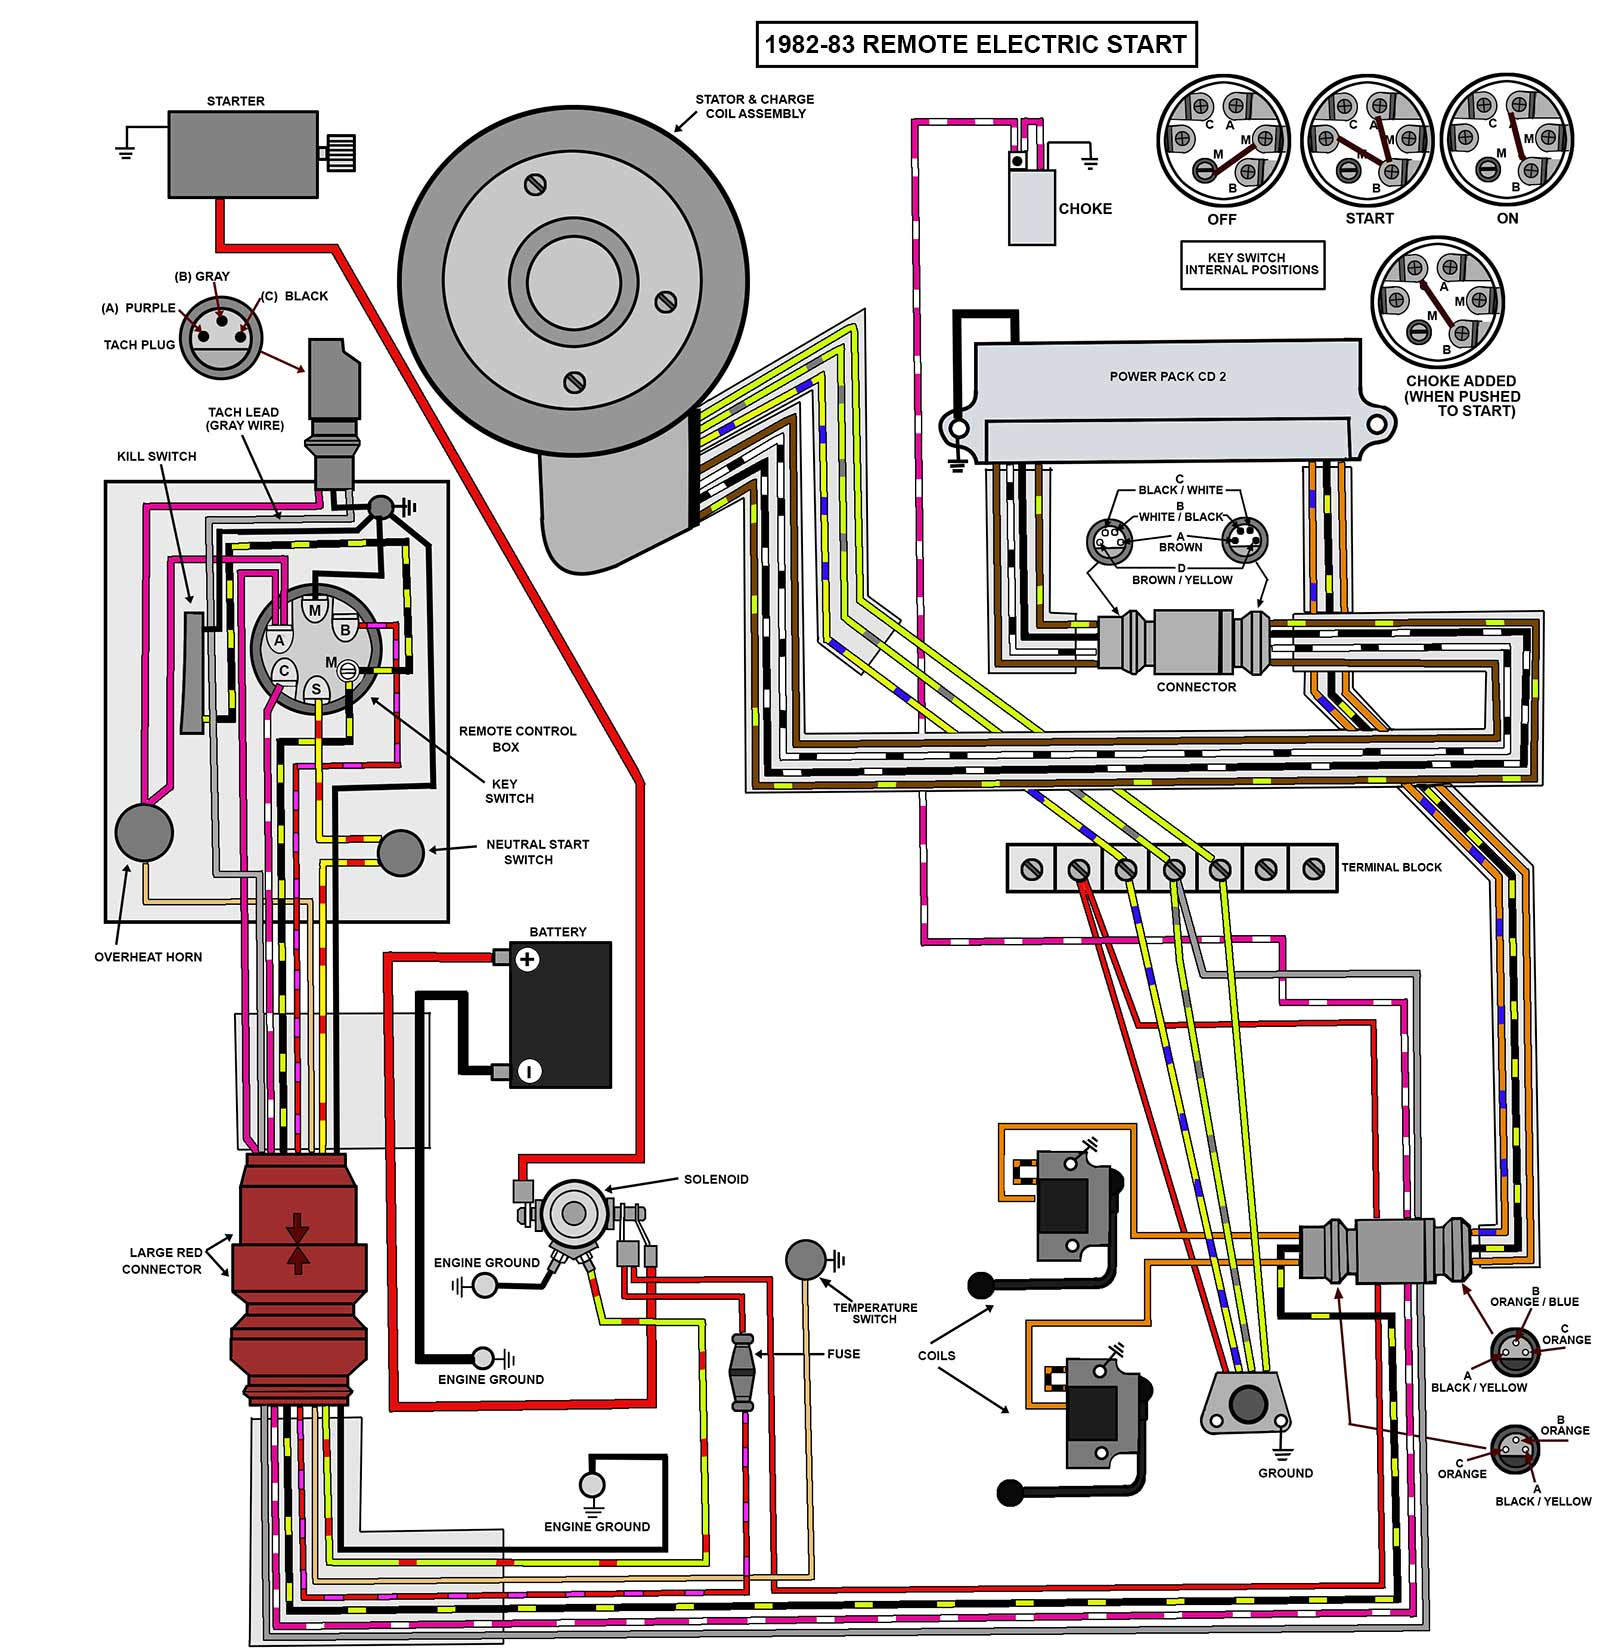 25_35_82 83_elec remote mastertech marine evinrude johnson outboard wiring diagrams  at gsmx.co